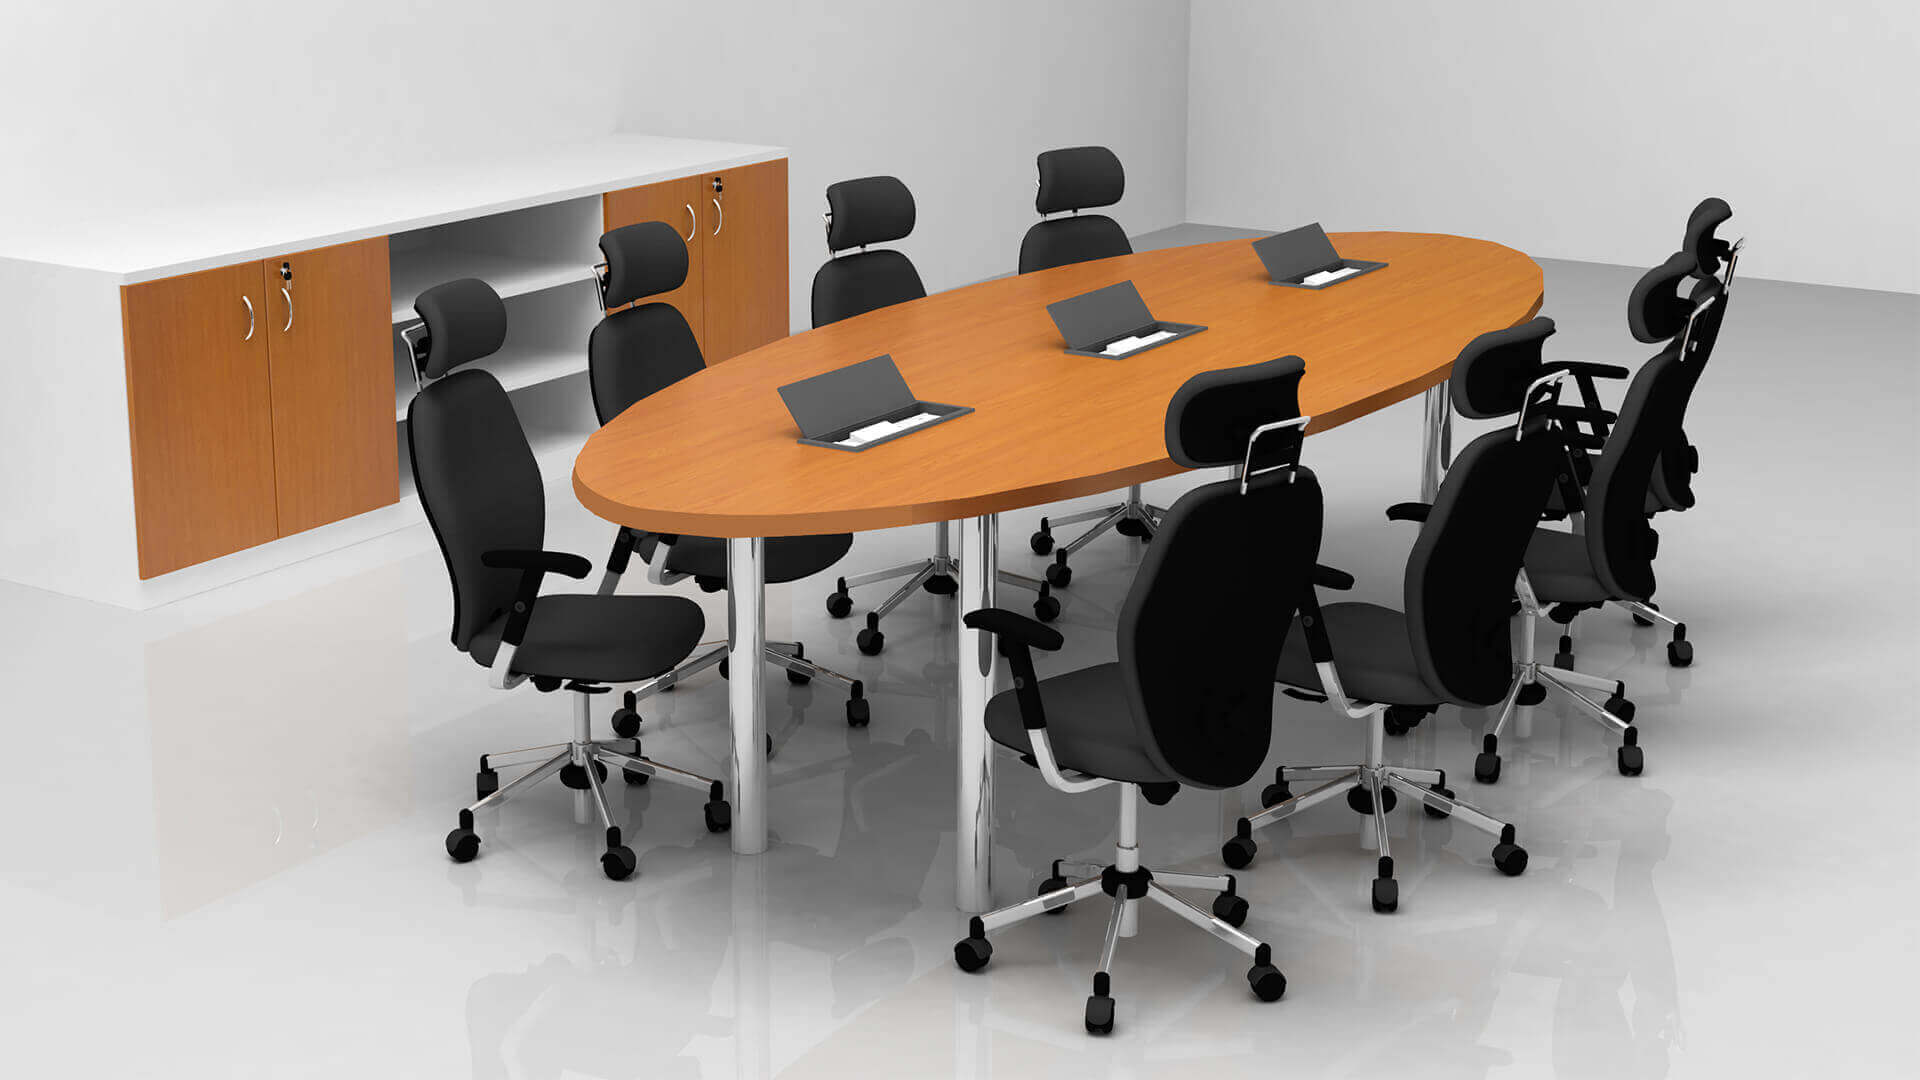 Conference Room Furnitures Conference Room Furnitures Suppliers In - Conference table india